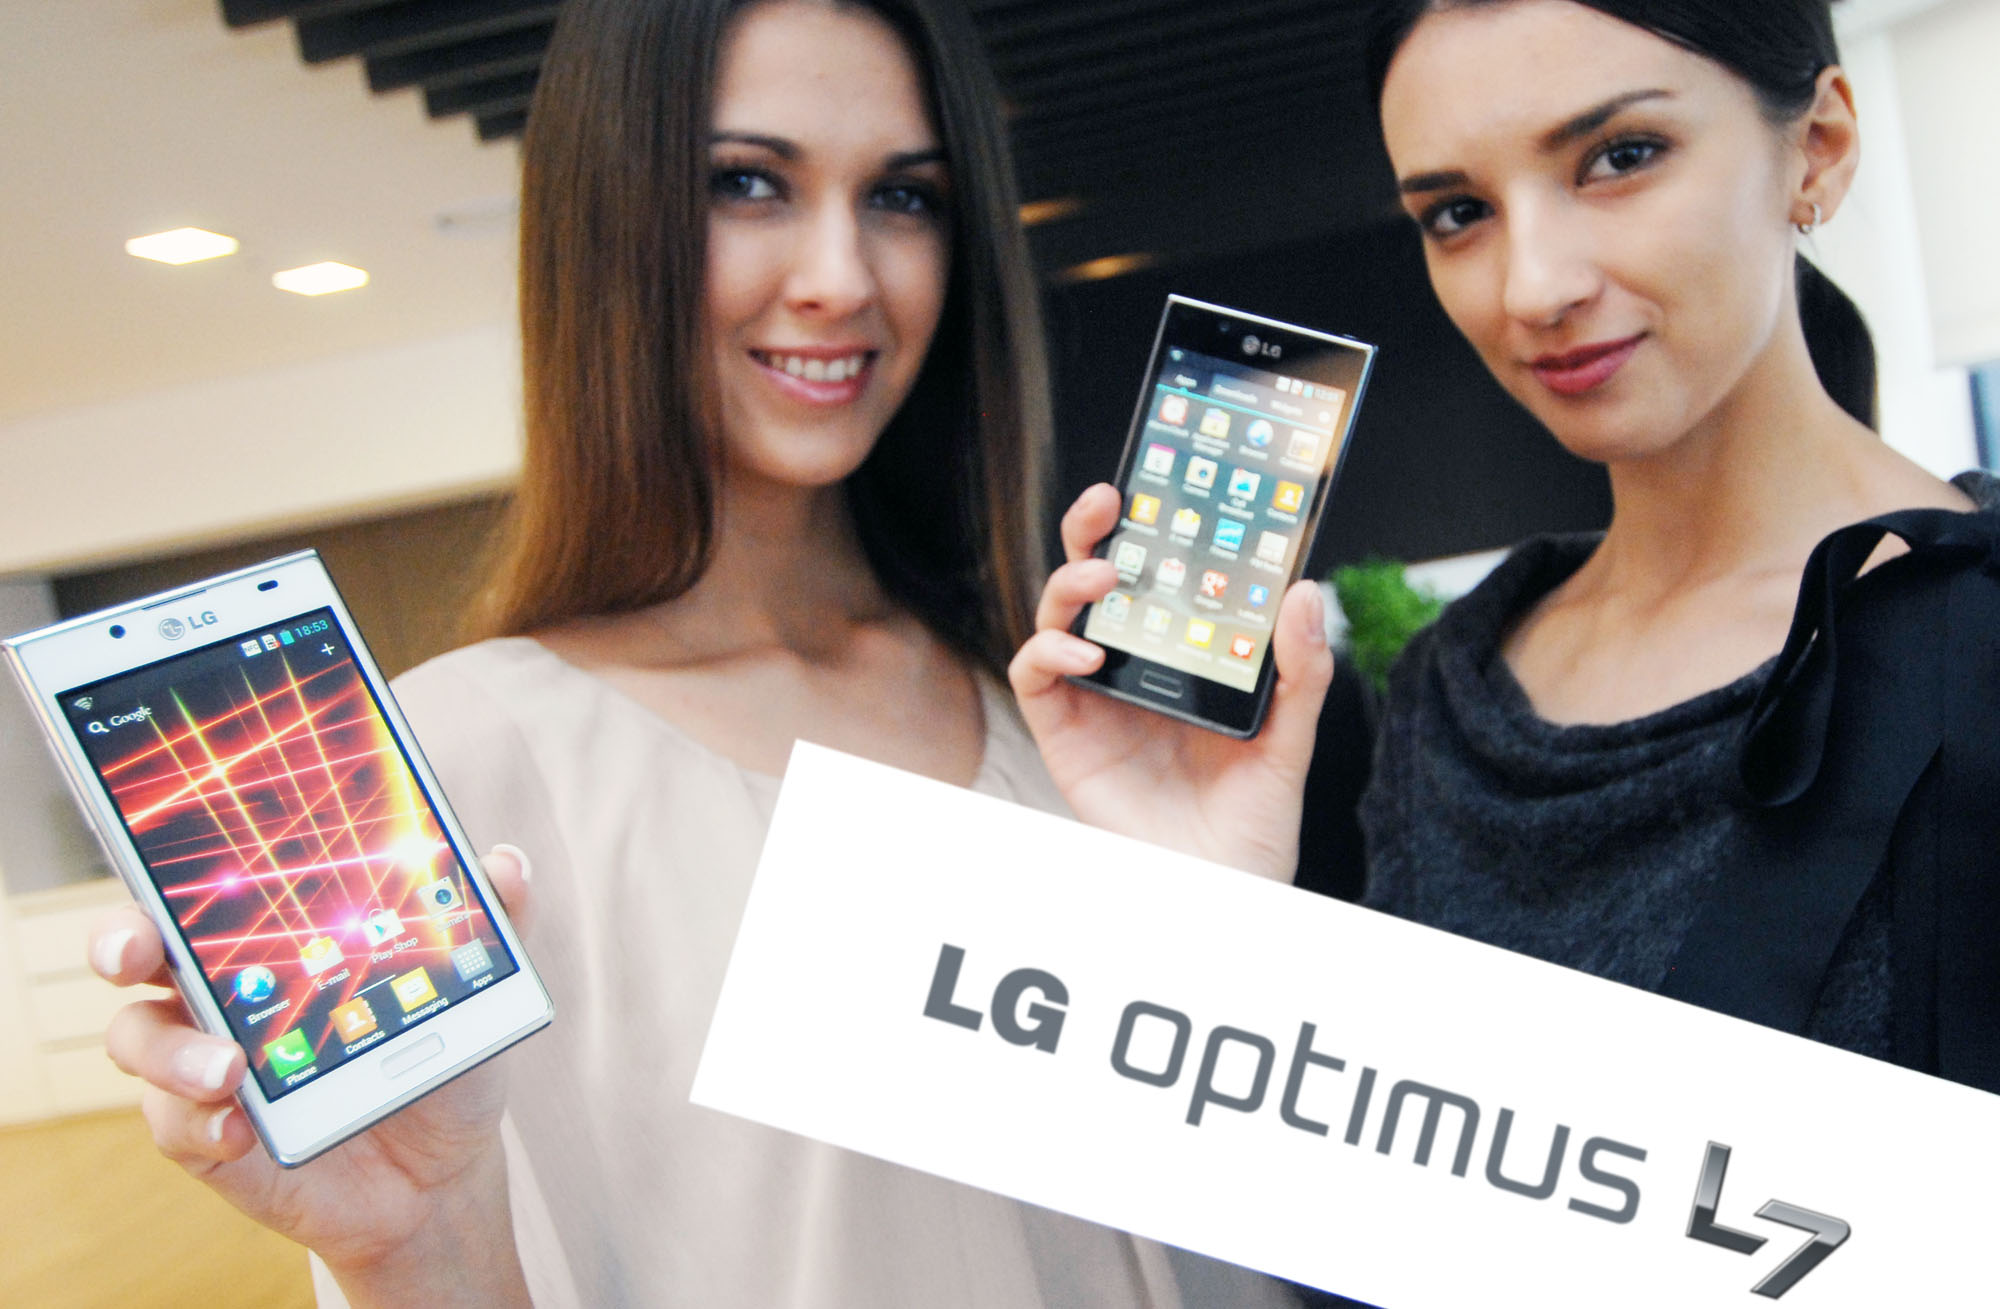 One model holds the white LG Optimus L7 while another holds the LG Optimus L7 and the LG Optimus L7 logo